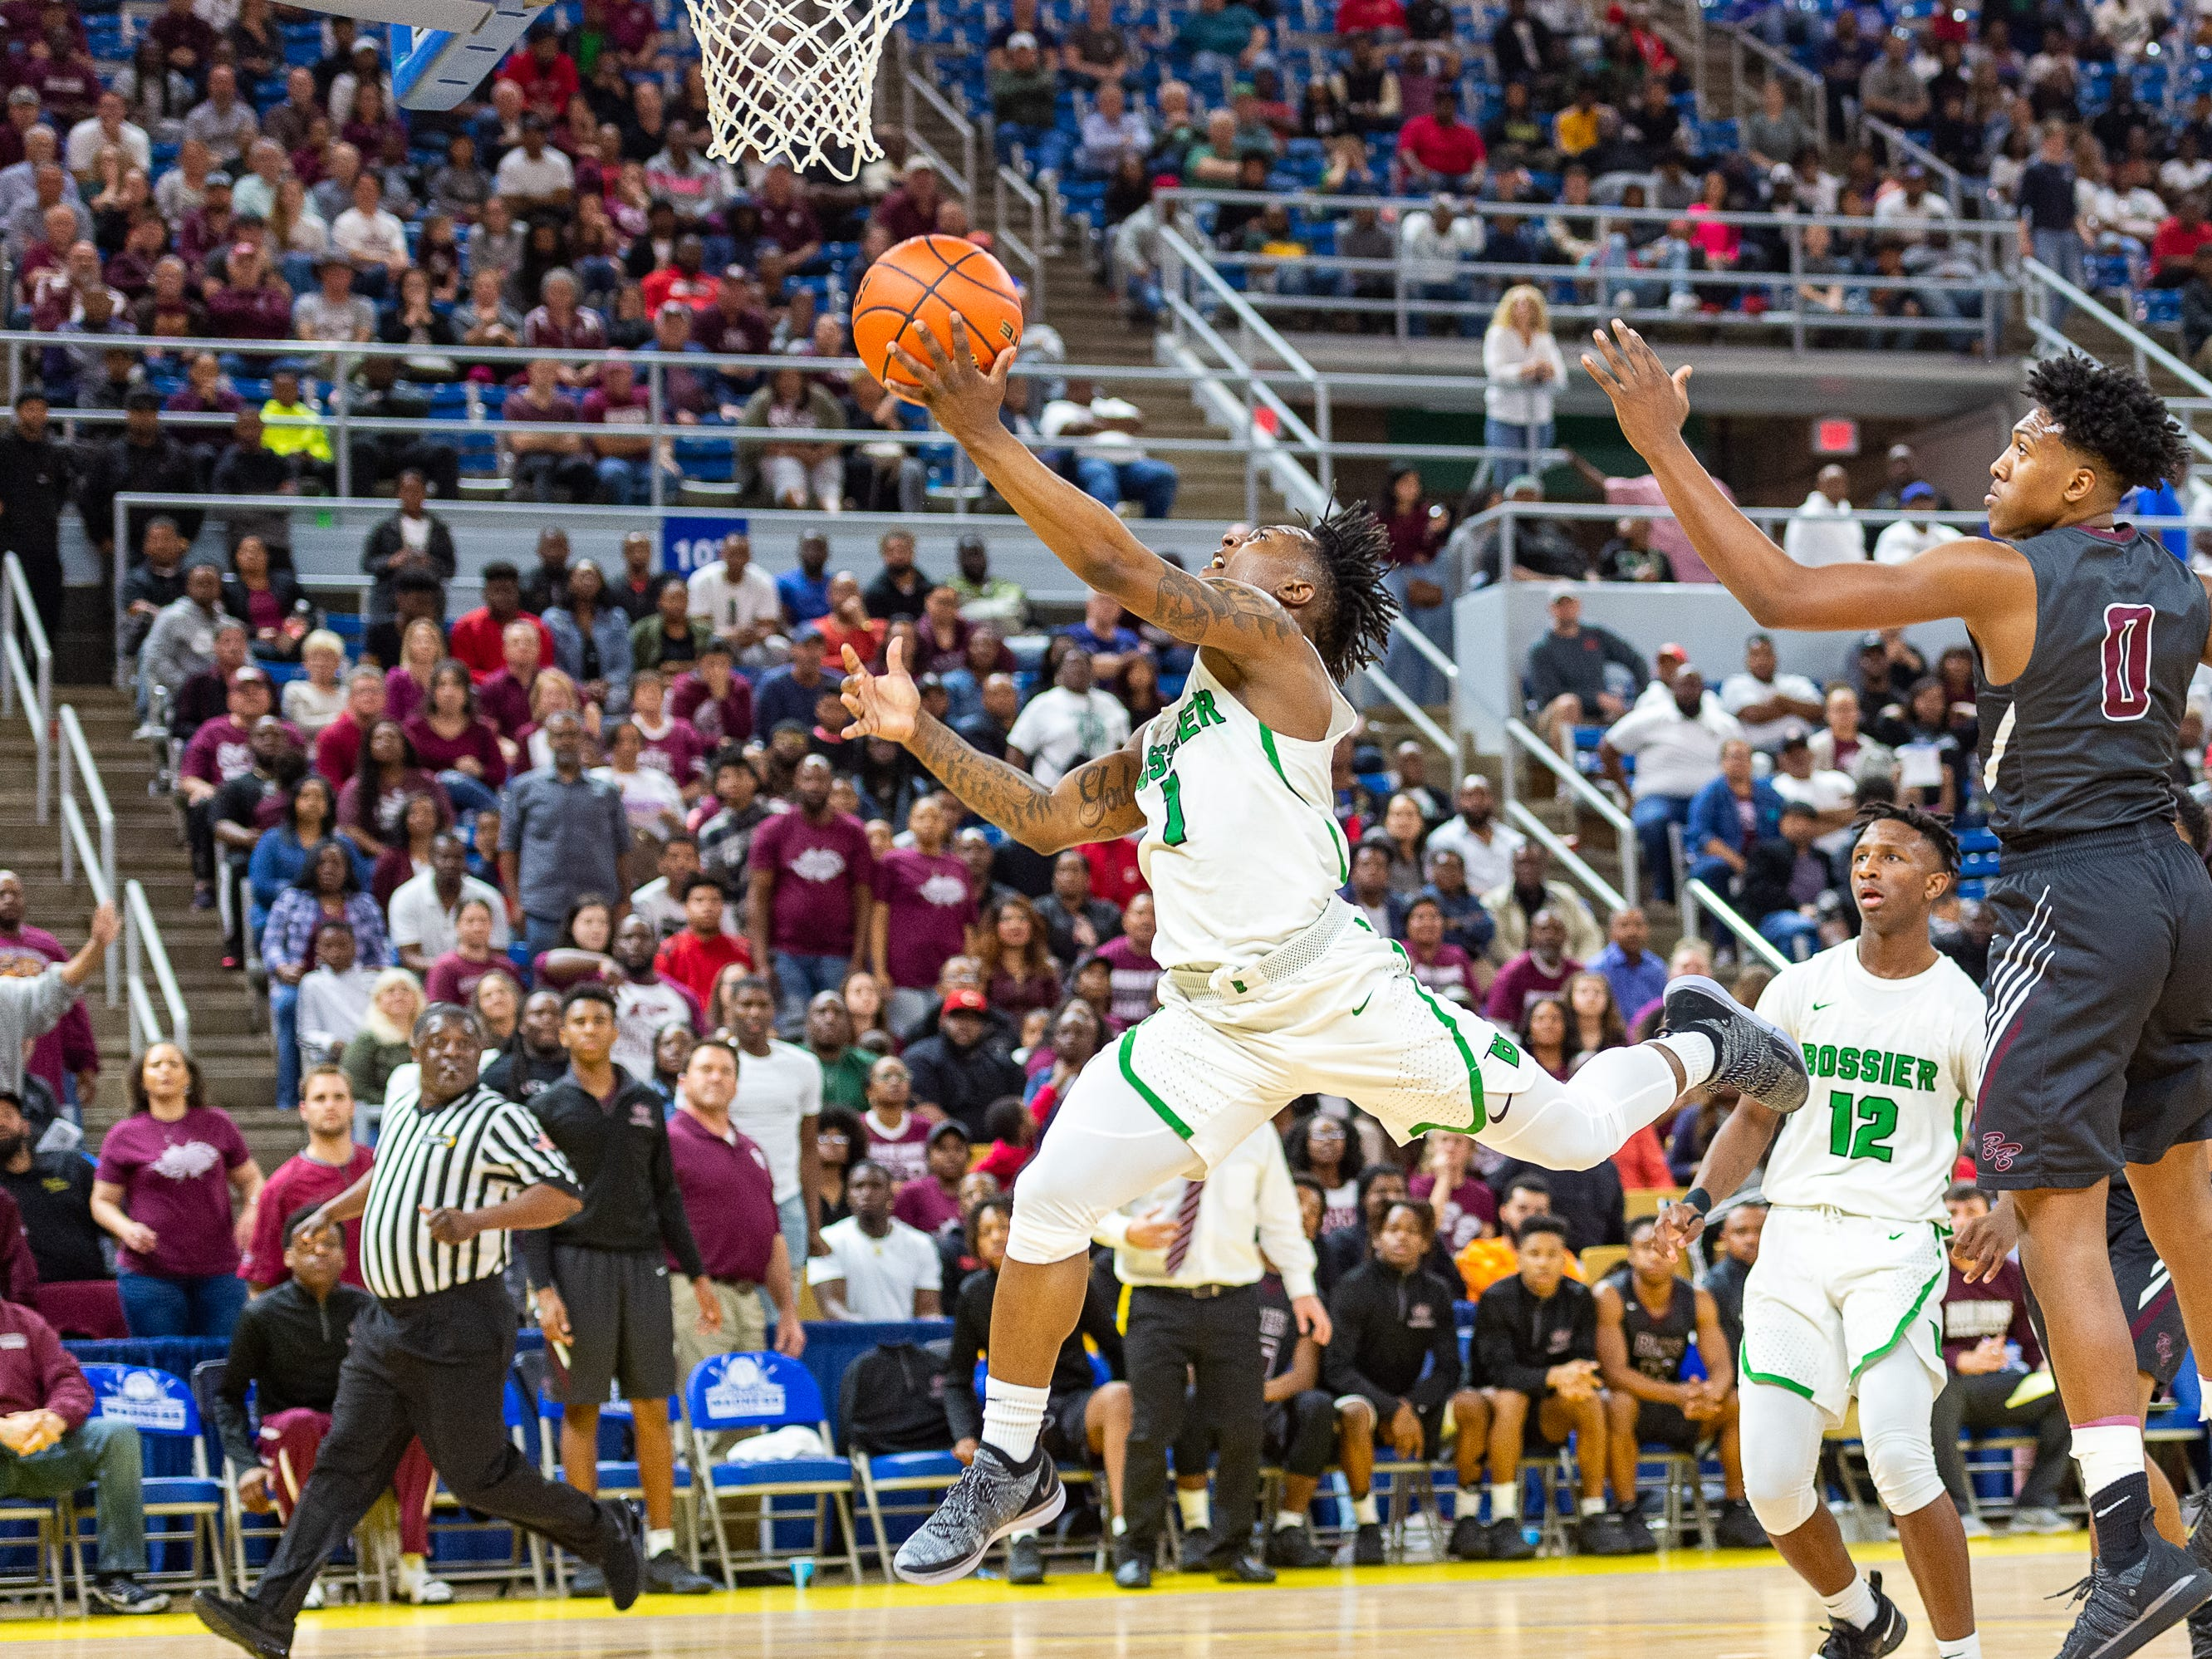 Jacoby Decker drives to the basket as Breaux Bridge takes on Bossier in the Allstate Sugar Bowl/LHSAA Boys' Marsh Madness State Championship. Friday, March 8, 2019.